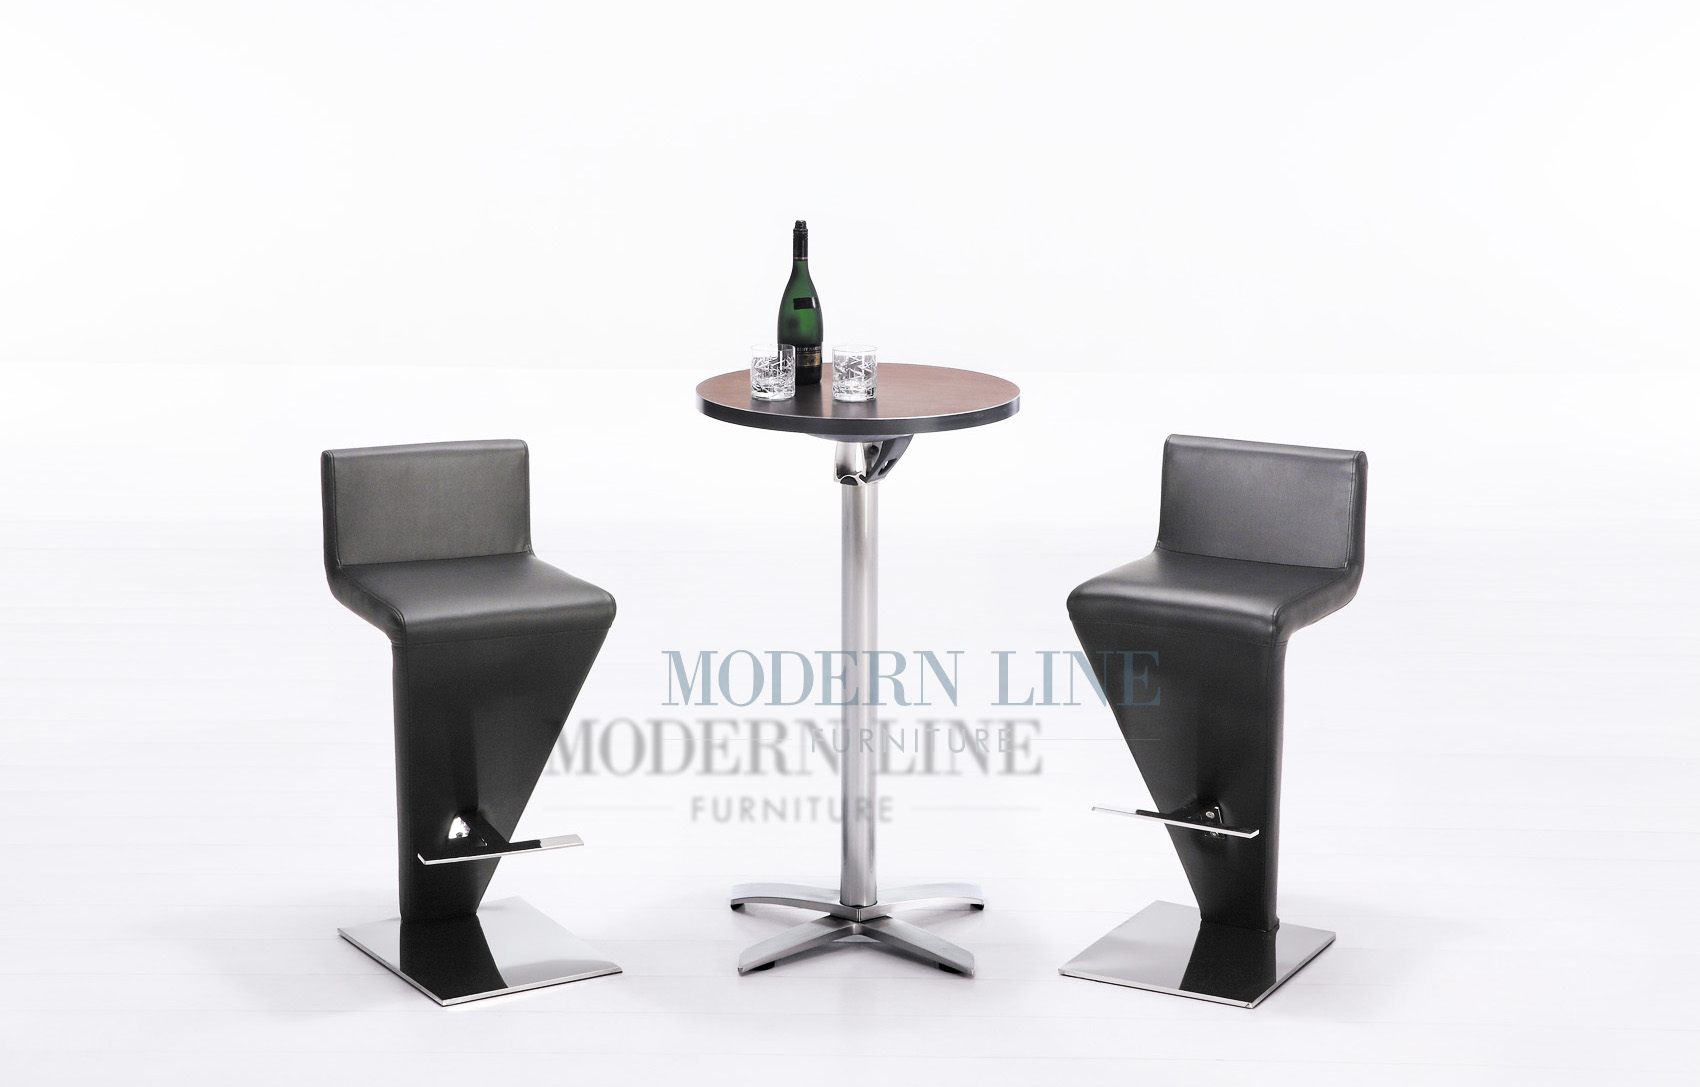 Modern Line Furniture Commercial Furniture Custom Made  : modern foldable round walnut wood top bar table with set of two black bar stools 62 from www.modernlinefurniture.com size 1700 x 1087 jpeg 179kB